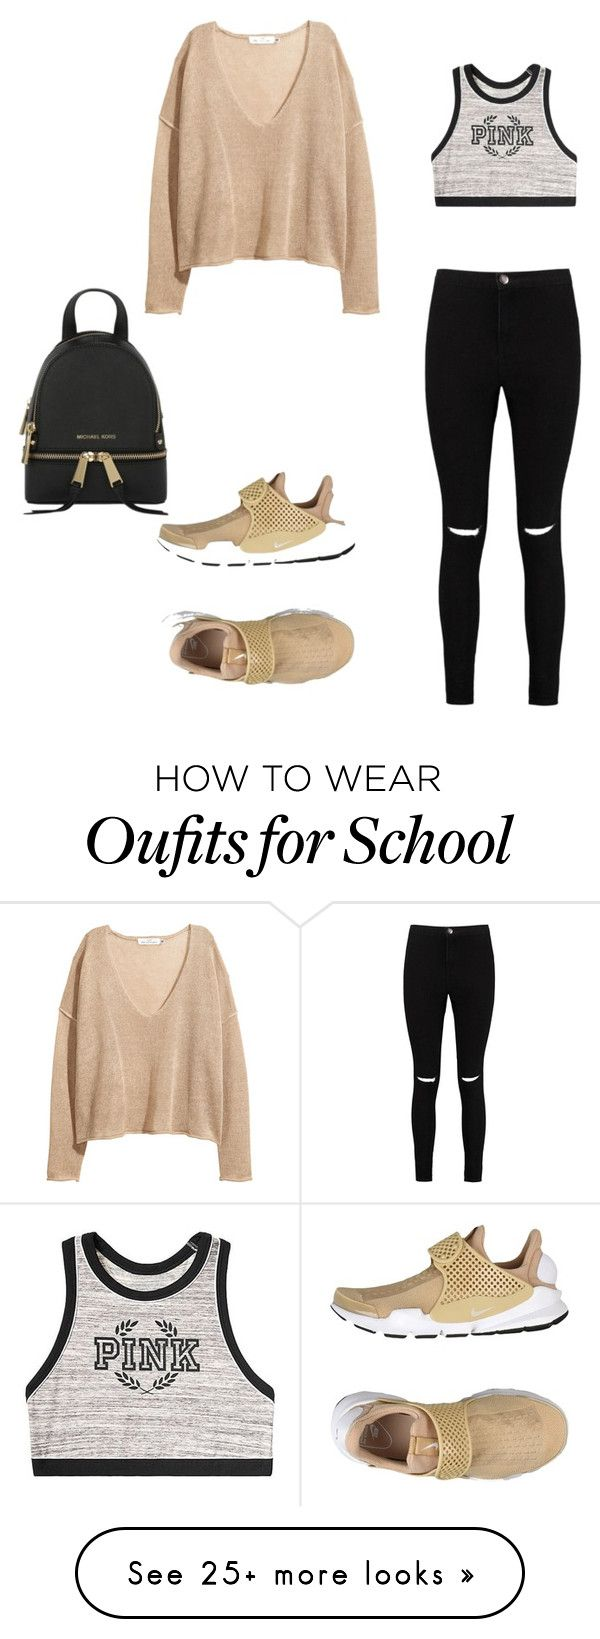 """""""school days"""" by idebbieluna on Polyvore featuring NIKE, Boohoo, Victoria's Secret and MICHAEL Michael Kors"""